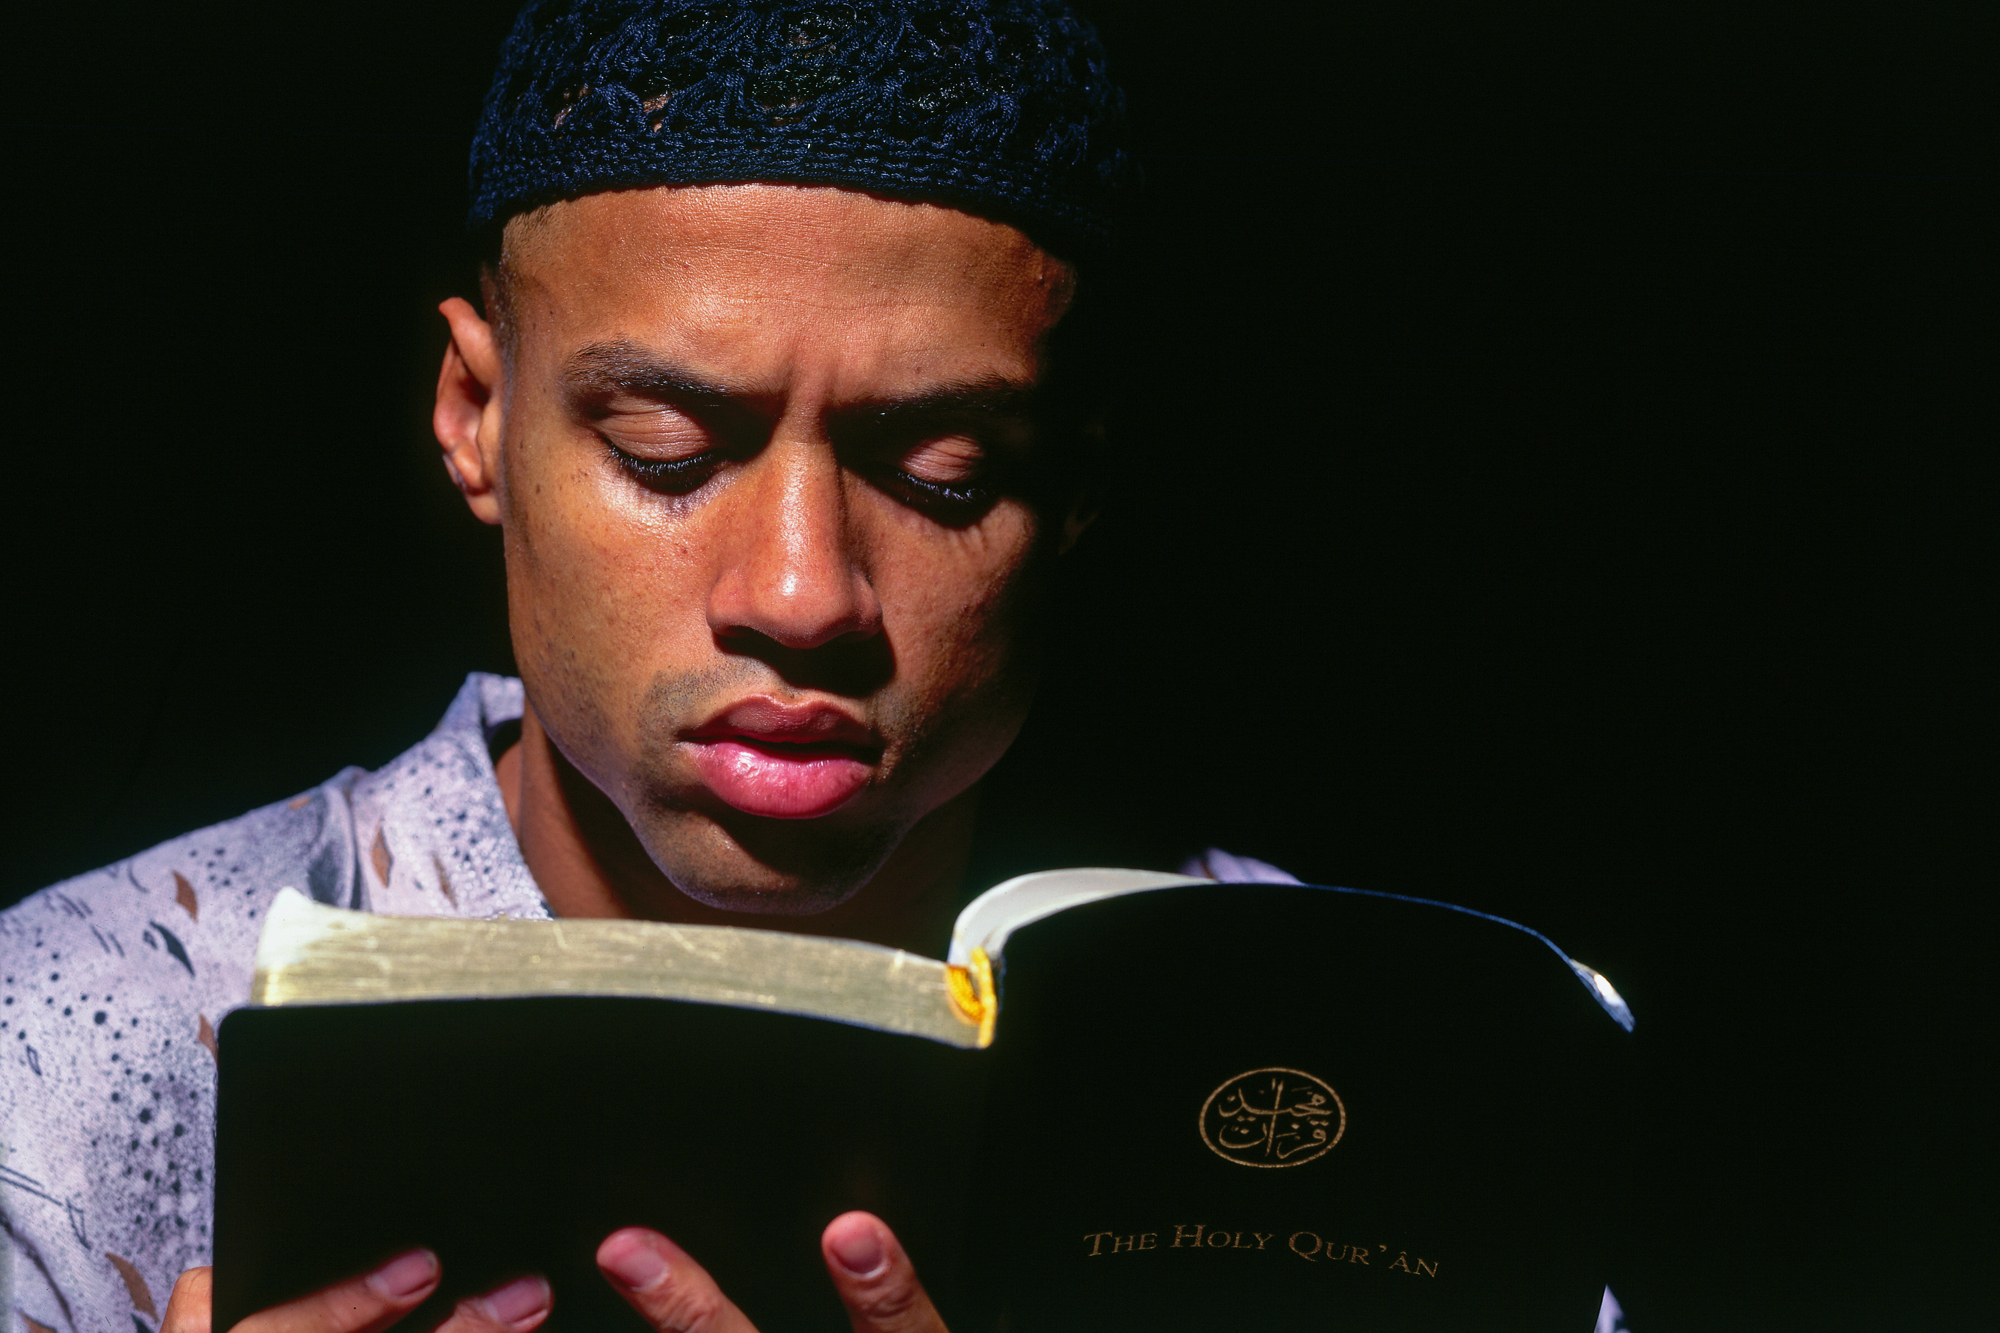 Mahmoud Abdul-Rauf #3 of the Denver Nuggets reads the Quran circa 1995 in Denver, Colorado.